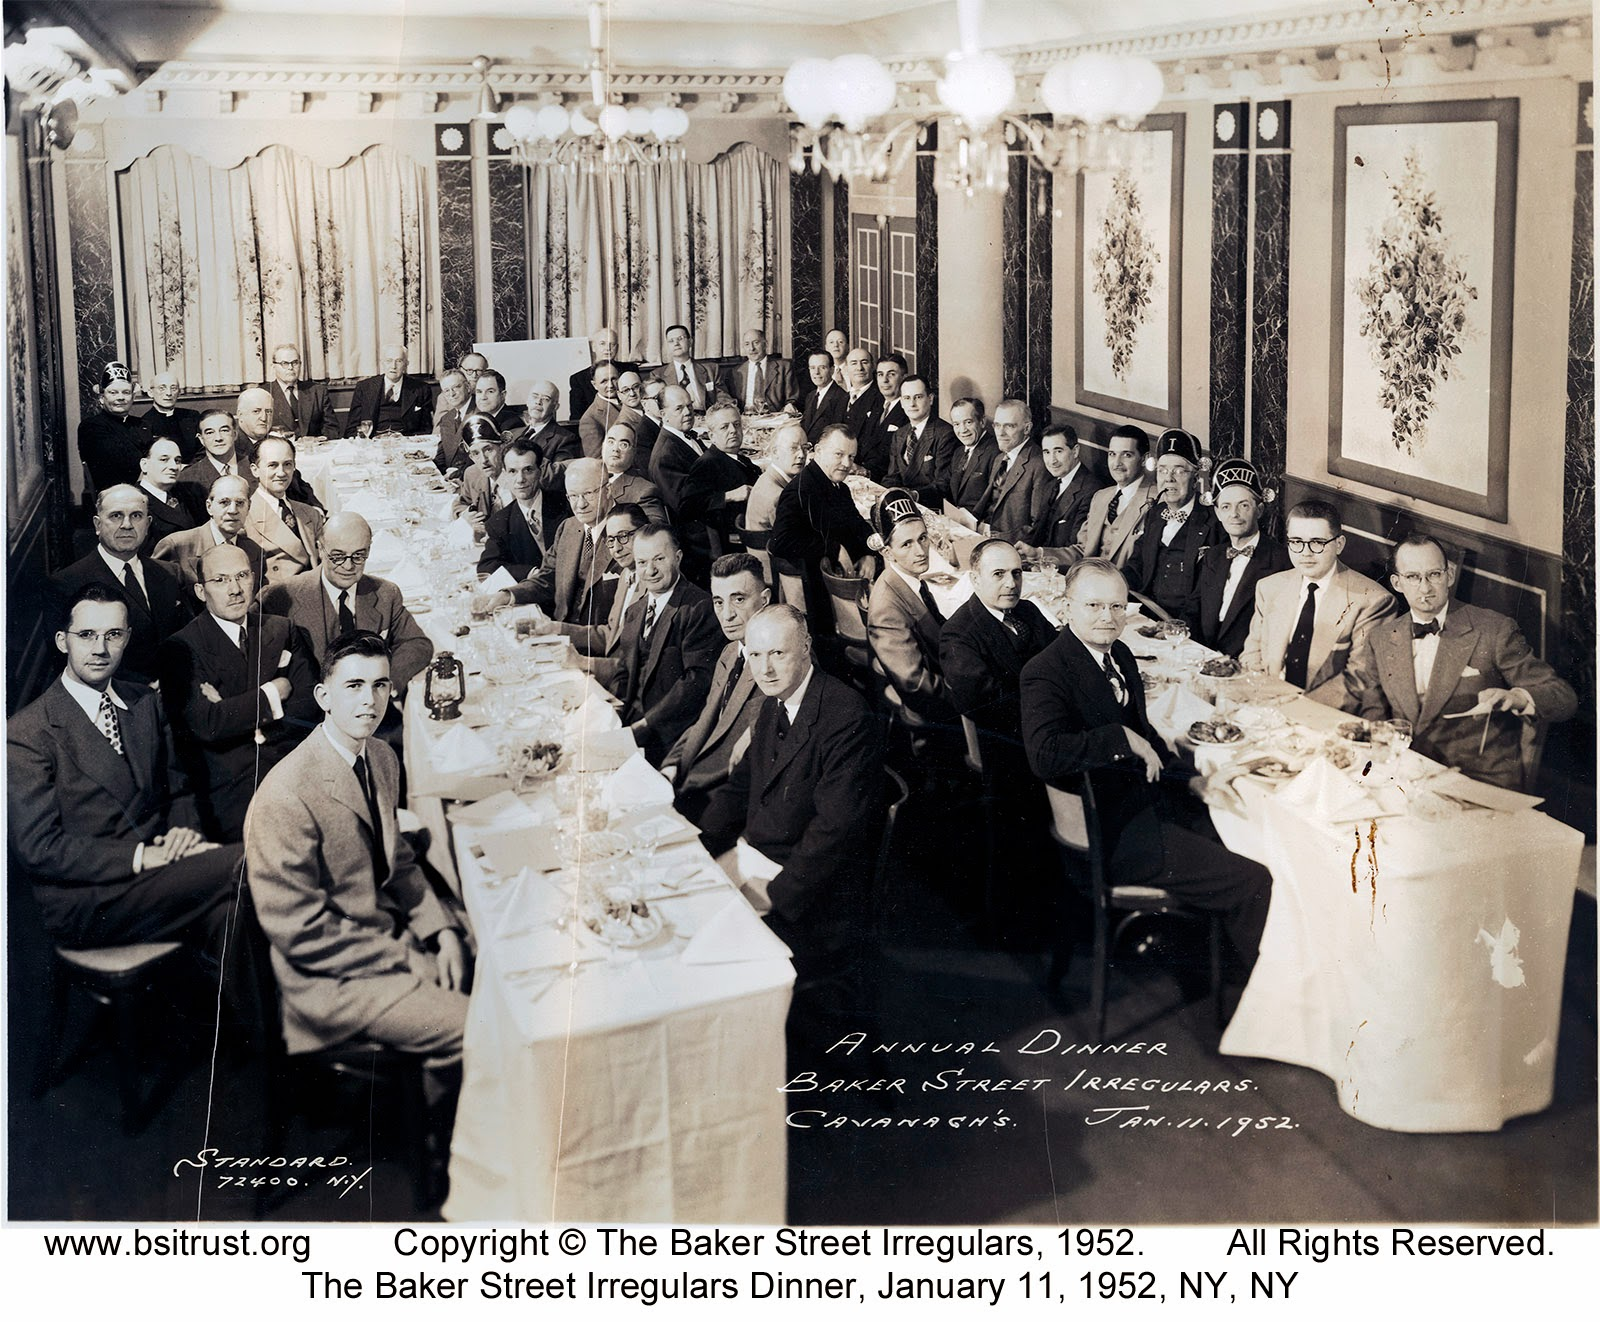 The 1952 BSI Dinner group photo